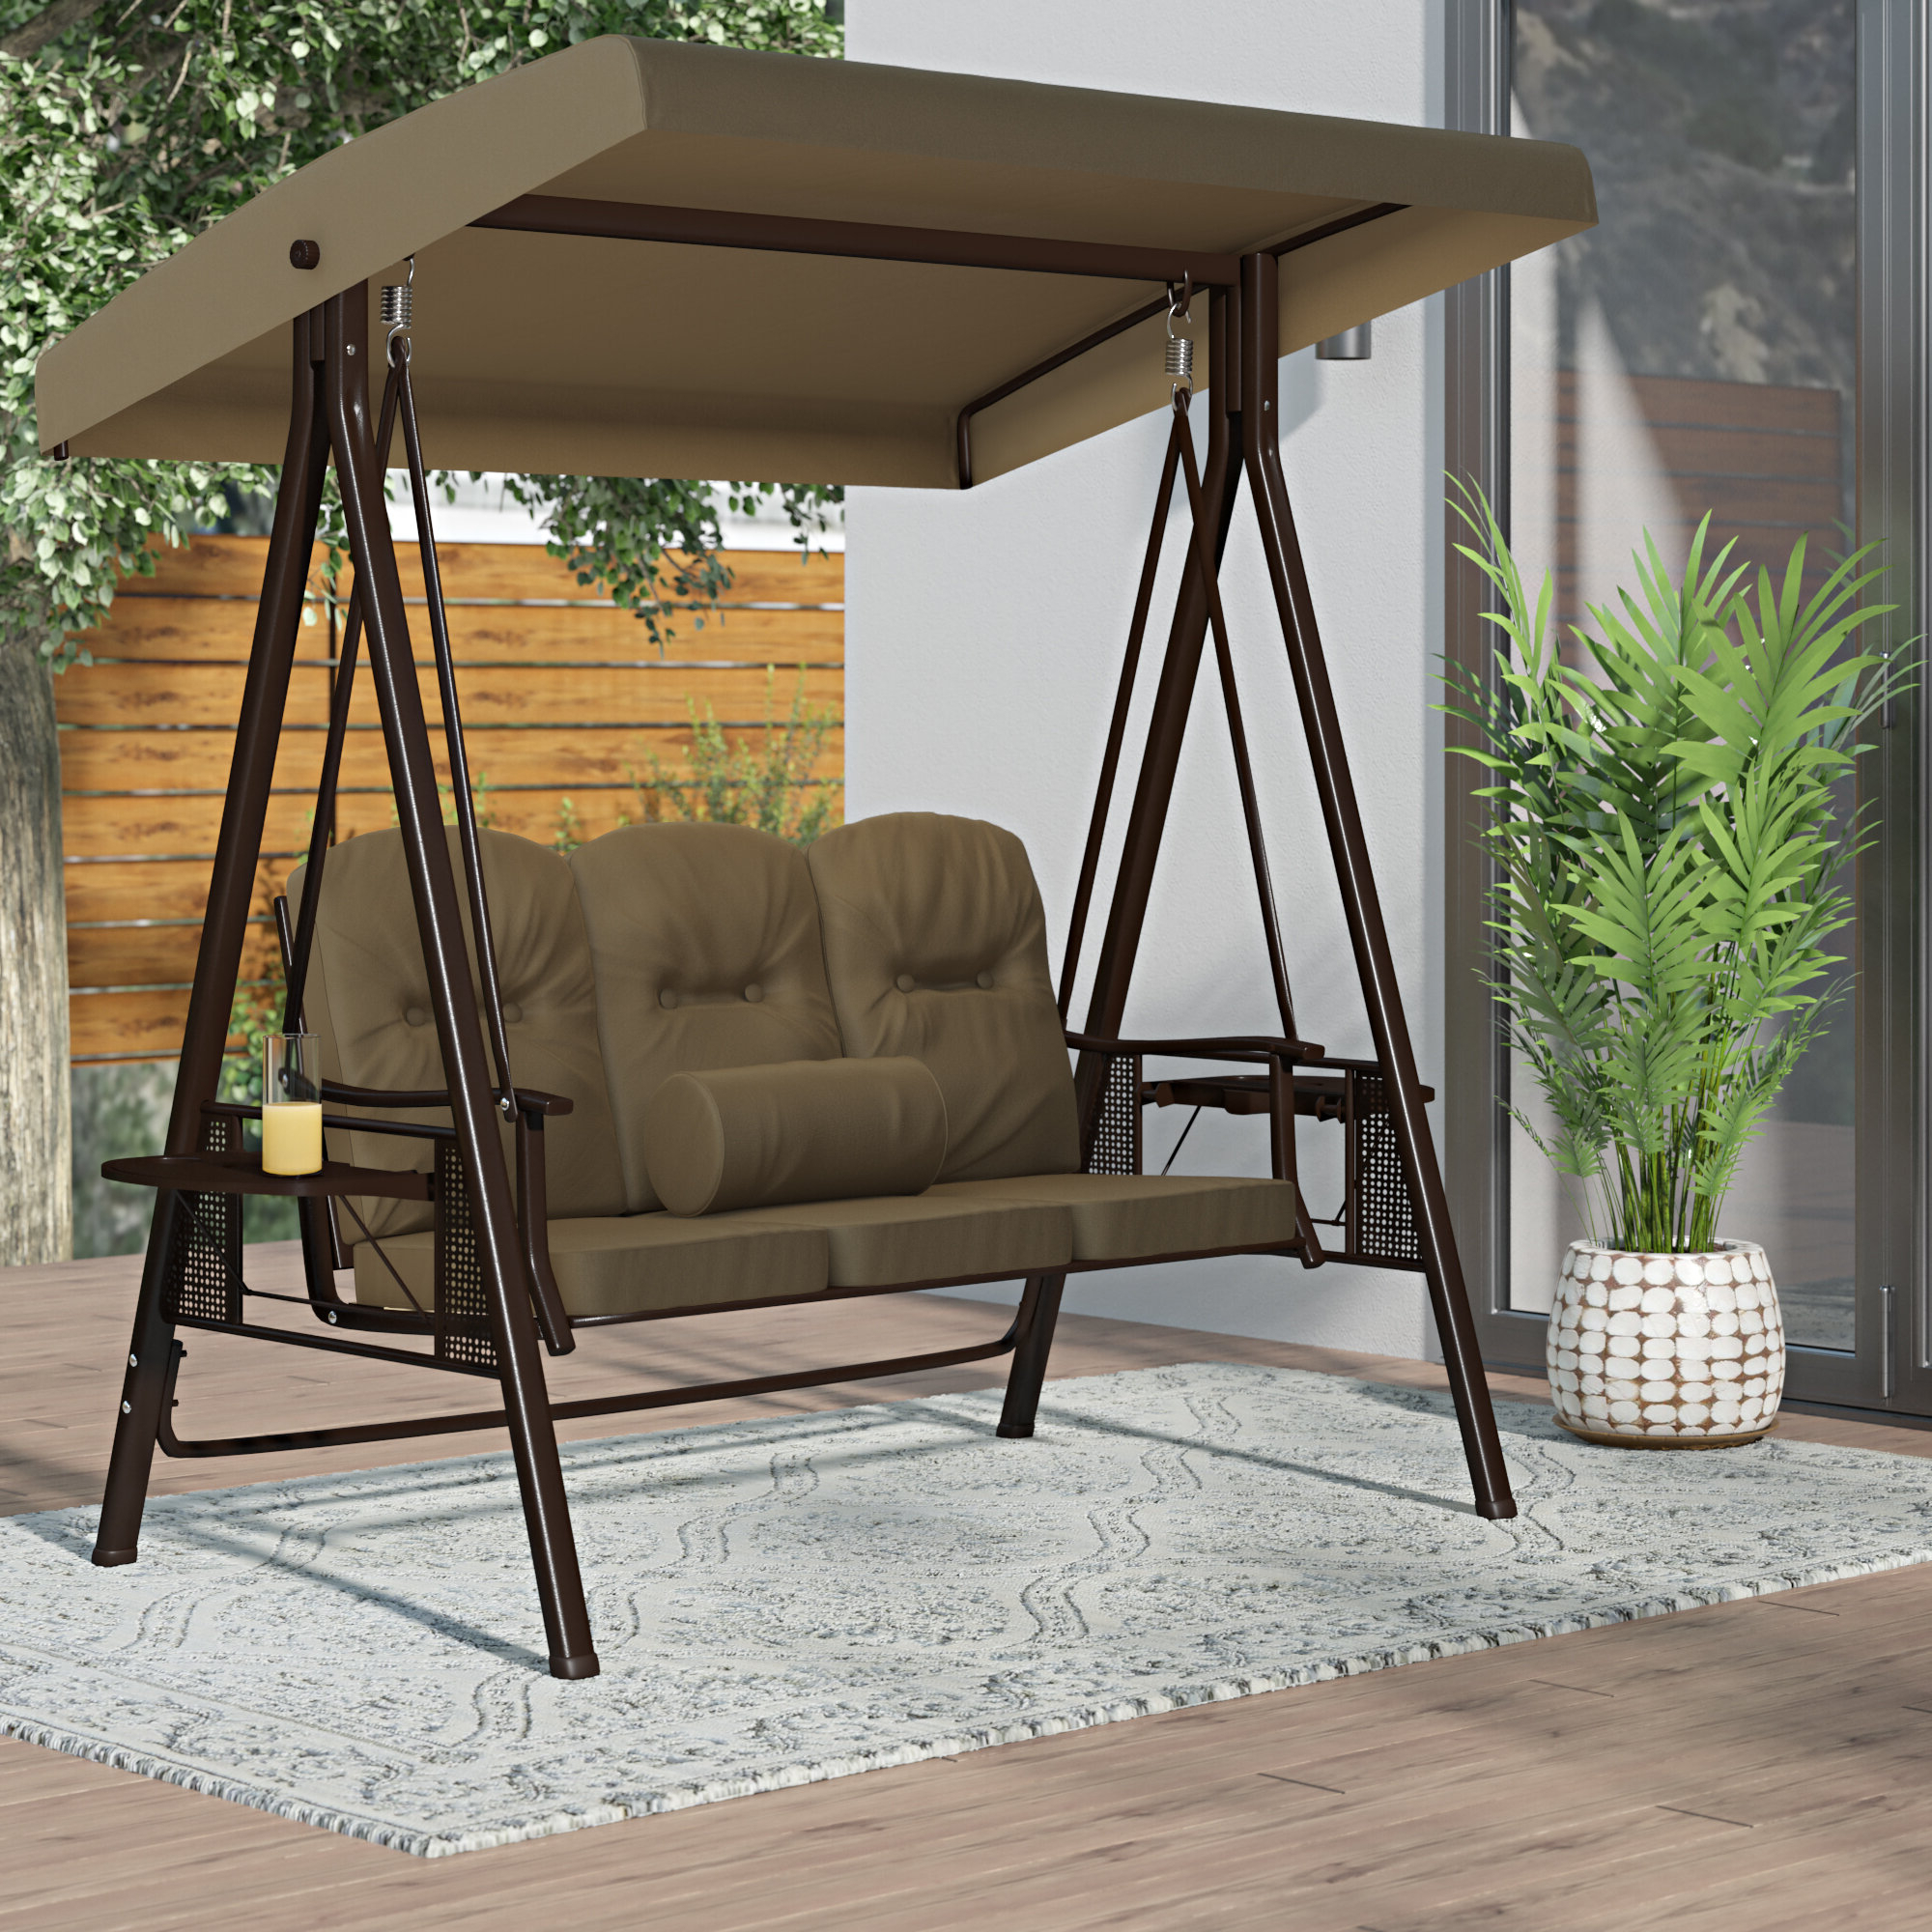 Folkston Outdoor Canopy Porch Swing With Stand For Best And Newest 3 Person Outdoor Porch Swings With Stand (View 25 of 25)